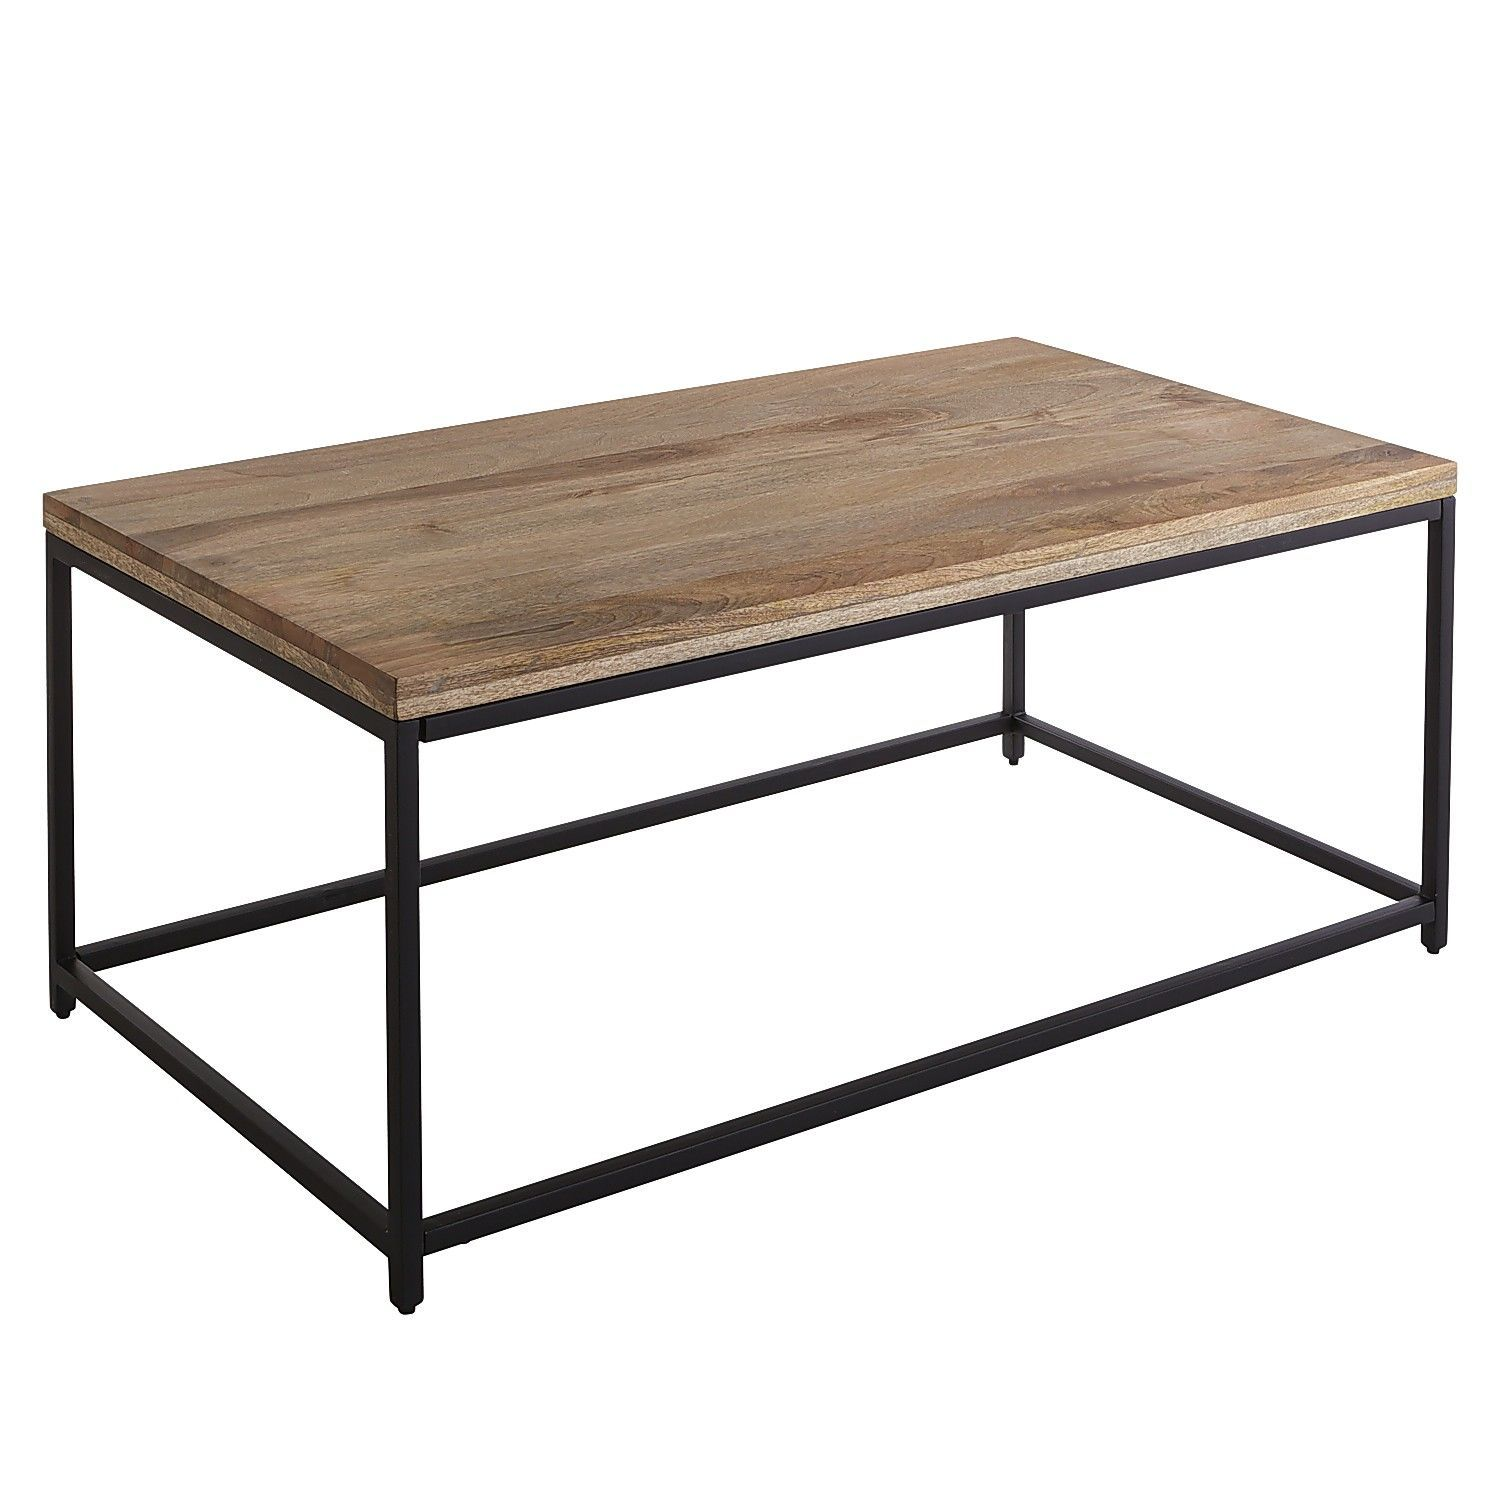 Superieur Takat Coffee Table | Pier 1 Imports